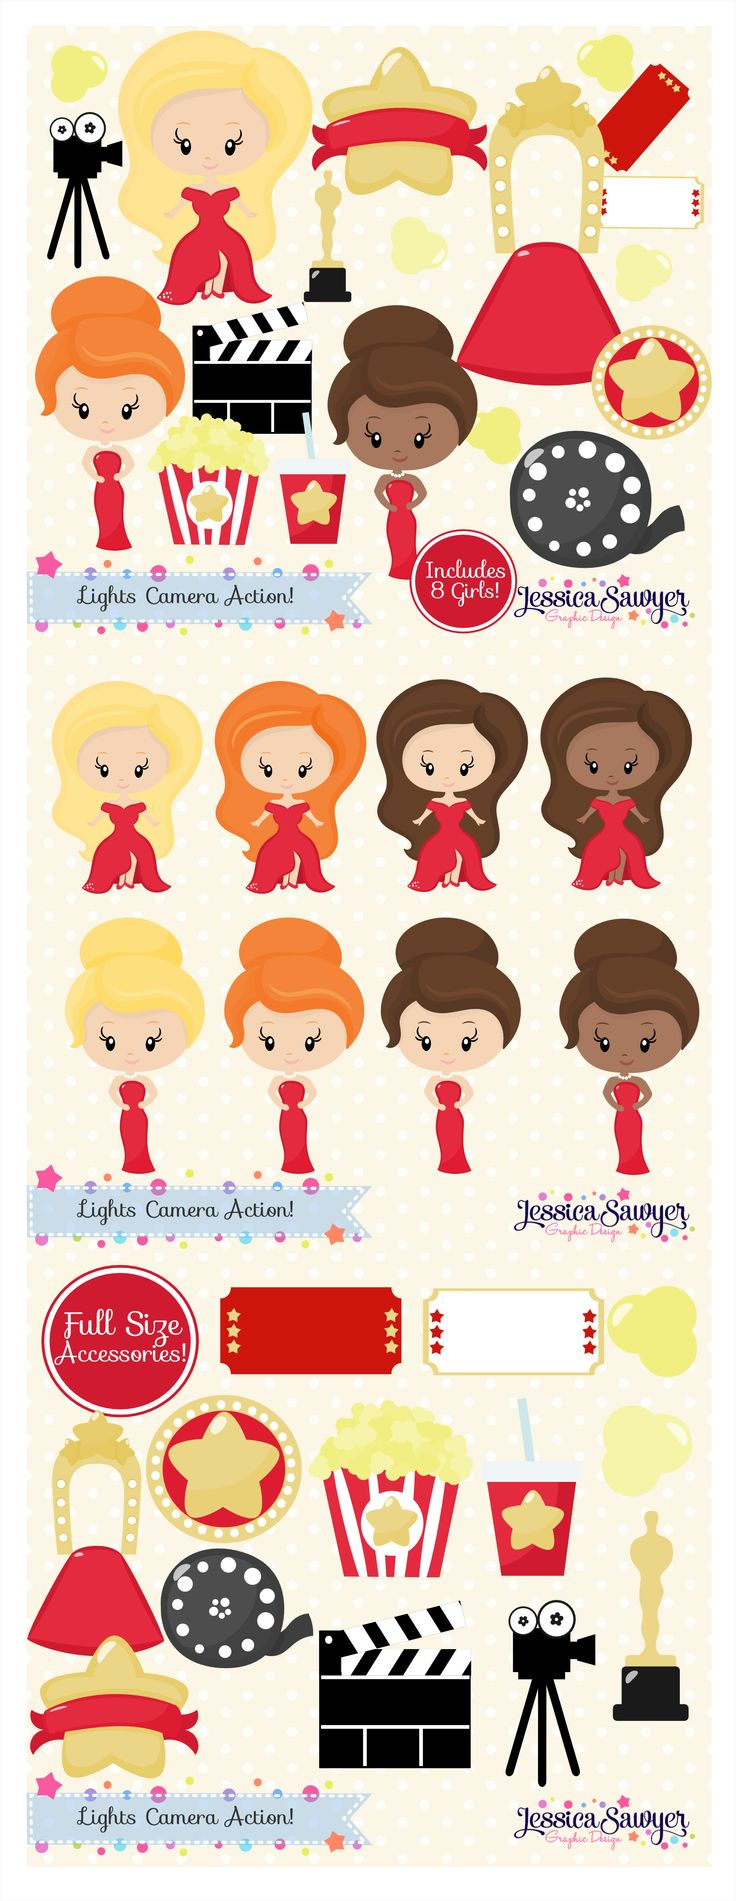 Disney clipart for commercial use png royalty free stock 1000+ images about Disney clipart on Pinterest   Disney, Cute ... png royalty free stock